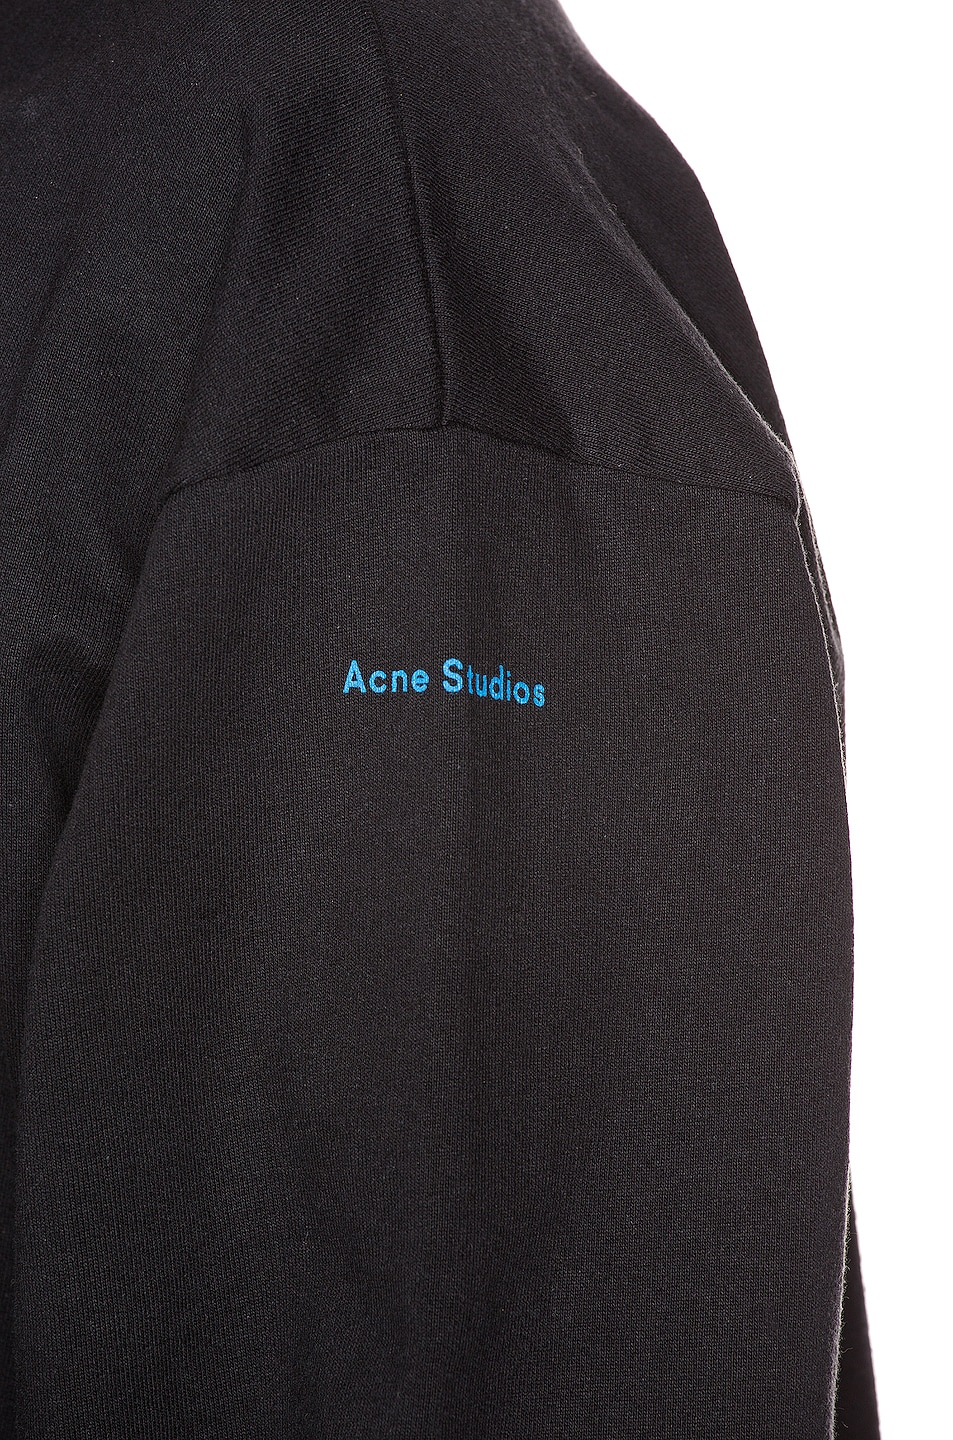 Image 6 of Acne Studios Forban Solstice Sweatshirt in Black